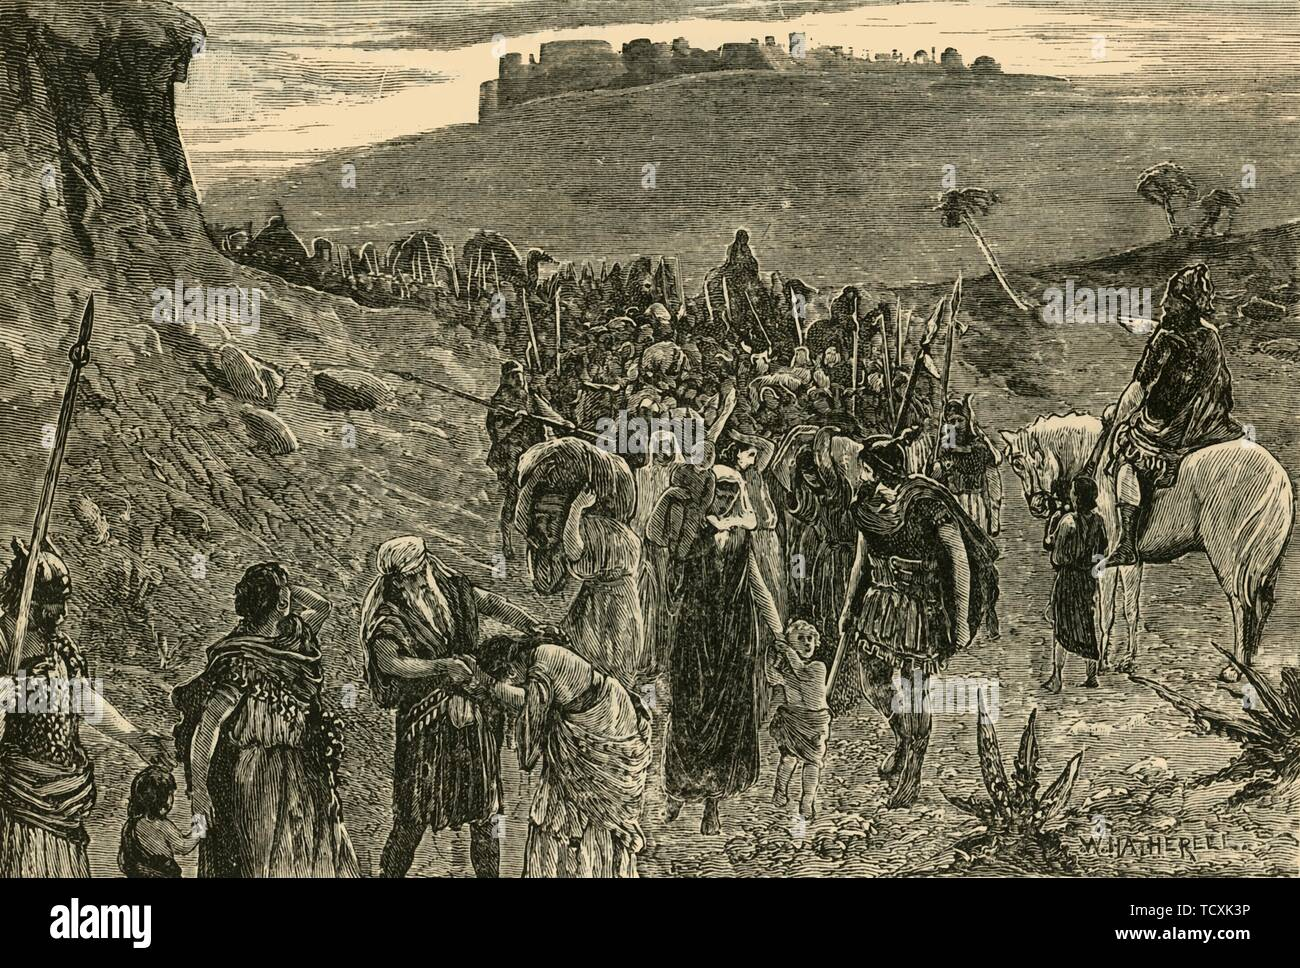 """'Israelites Going Into Capitvity', 1890. The Israelite people were sent into exile for worshiping false gods, wher Assyrian armies took thousands into captivity, c740 BC. (Kings:17). From """"Cassell's Illustrated Universal History, Vol. I - Early and Greek History"""", by Edmund Ollier. [Cassell and Company, Limited, London, Paris and Melbourne, 1890] - Stock Image"""